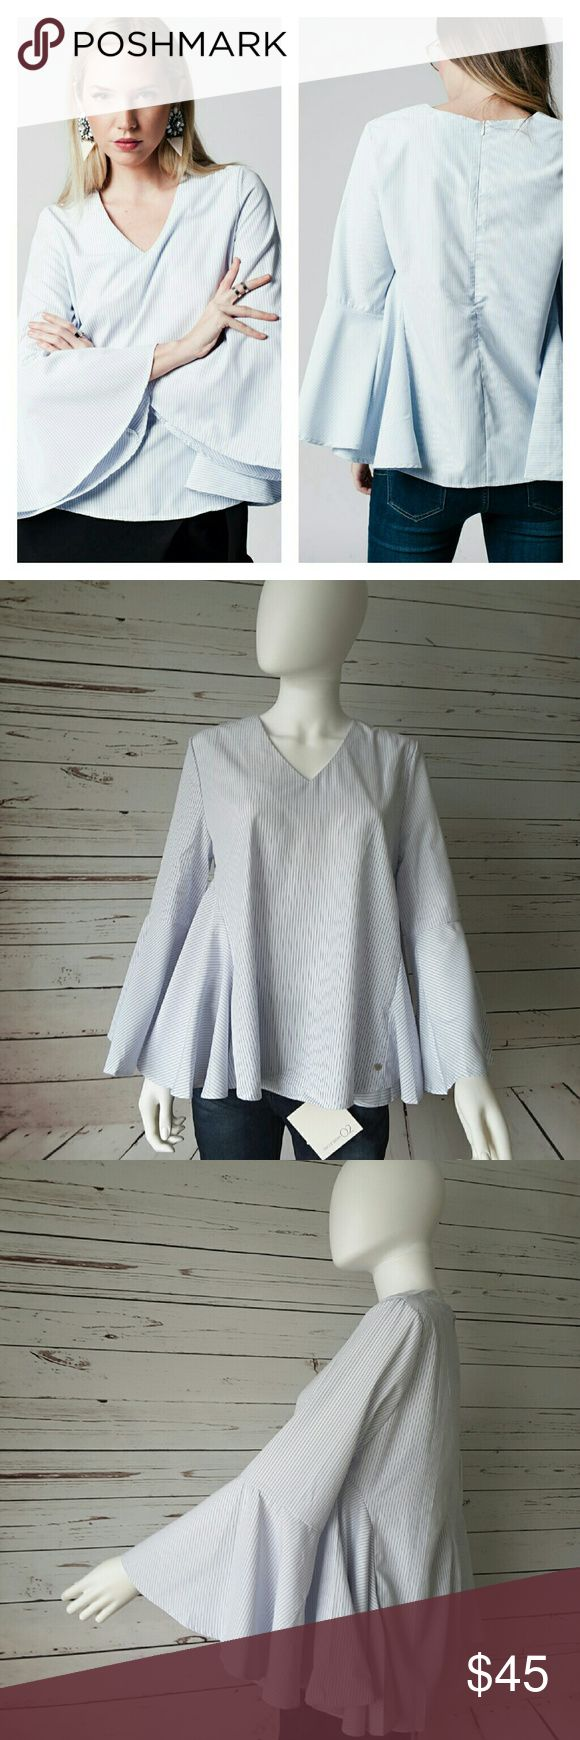 Striped FlounceTop This adorable, easy top has an all over pinstripe pattern, trumpet sleeves and side flounces. Zips in back. Fits size 8.  Price firm unless bundled, 15% off 3 or more, free shipping with 4+ Q2 Tops Blouses